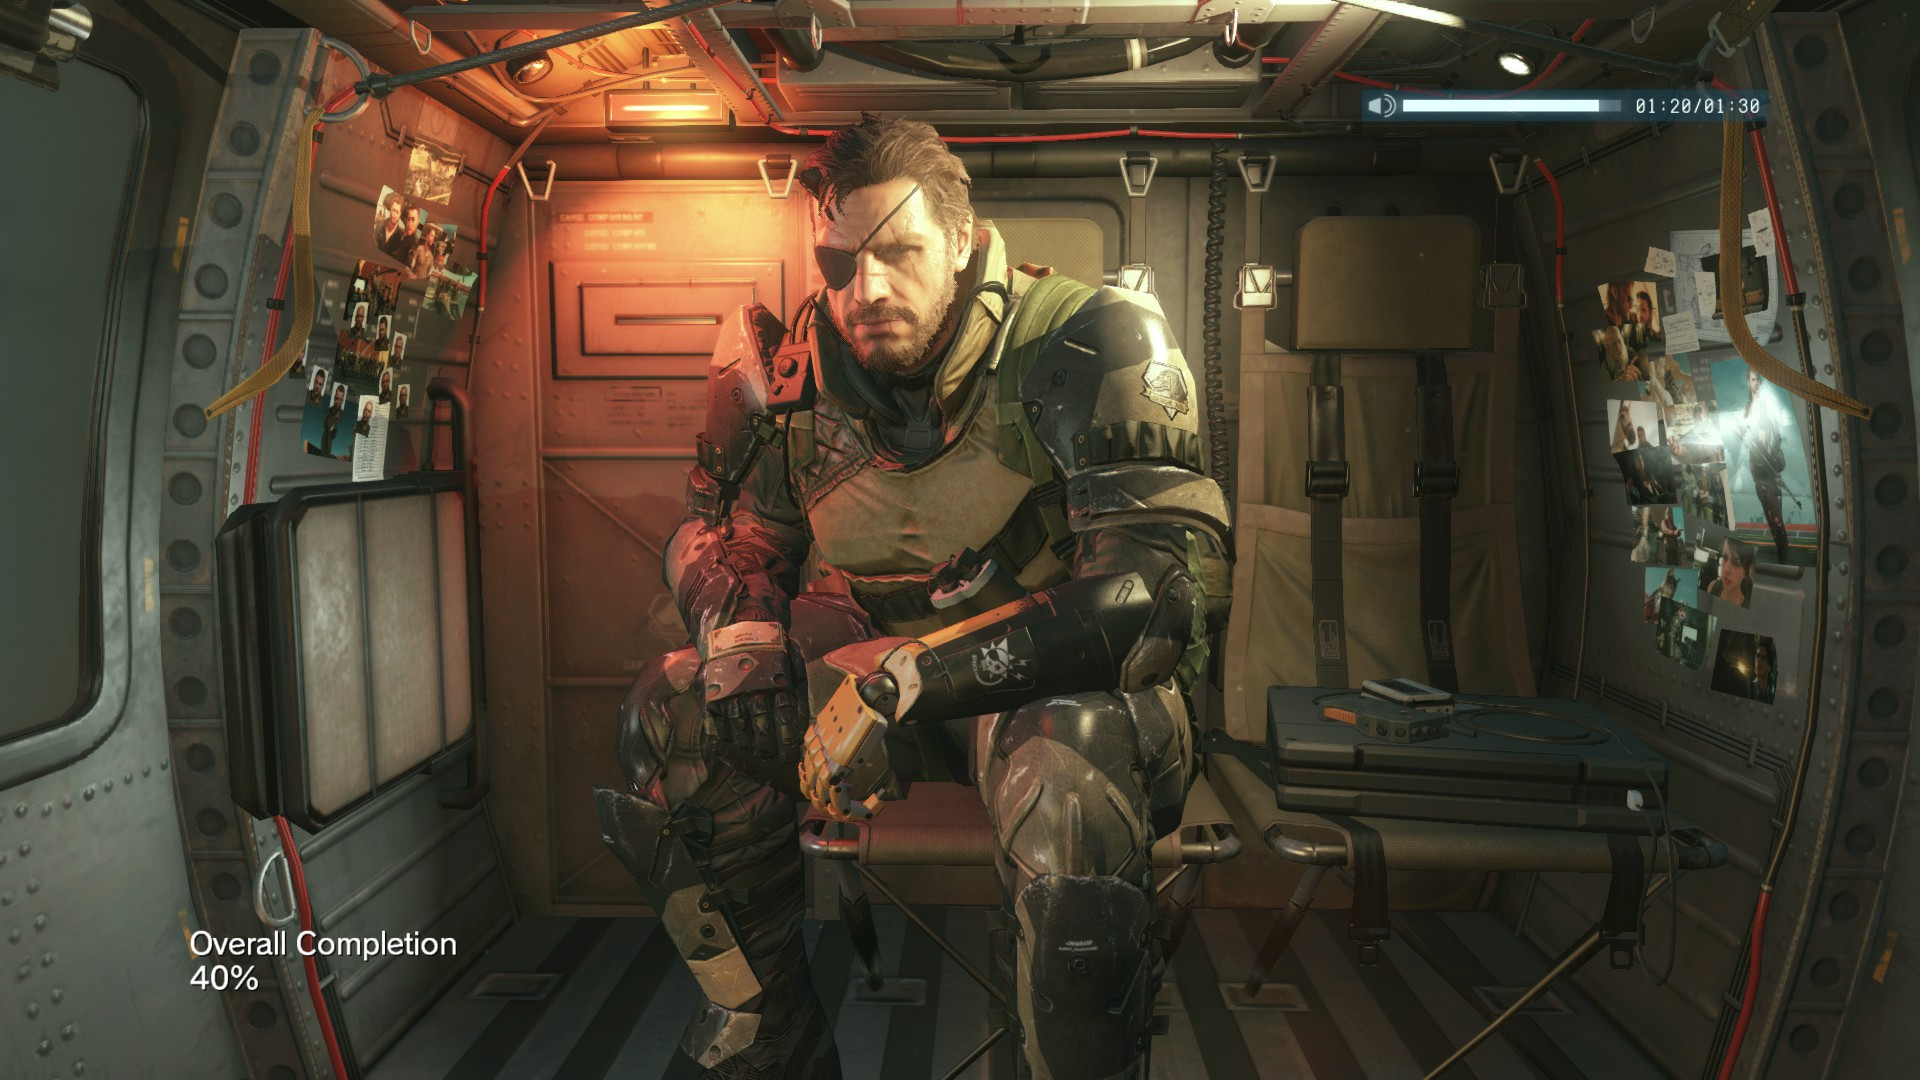 Mgsv Elicottero : The detail in phantom pain is insane metalgearsolid